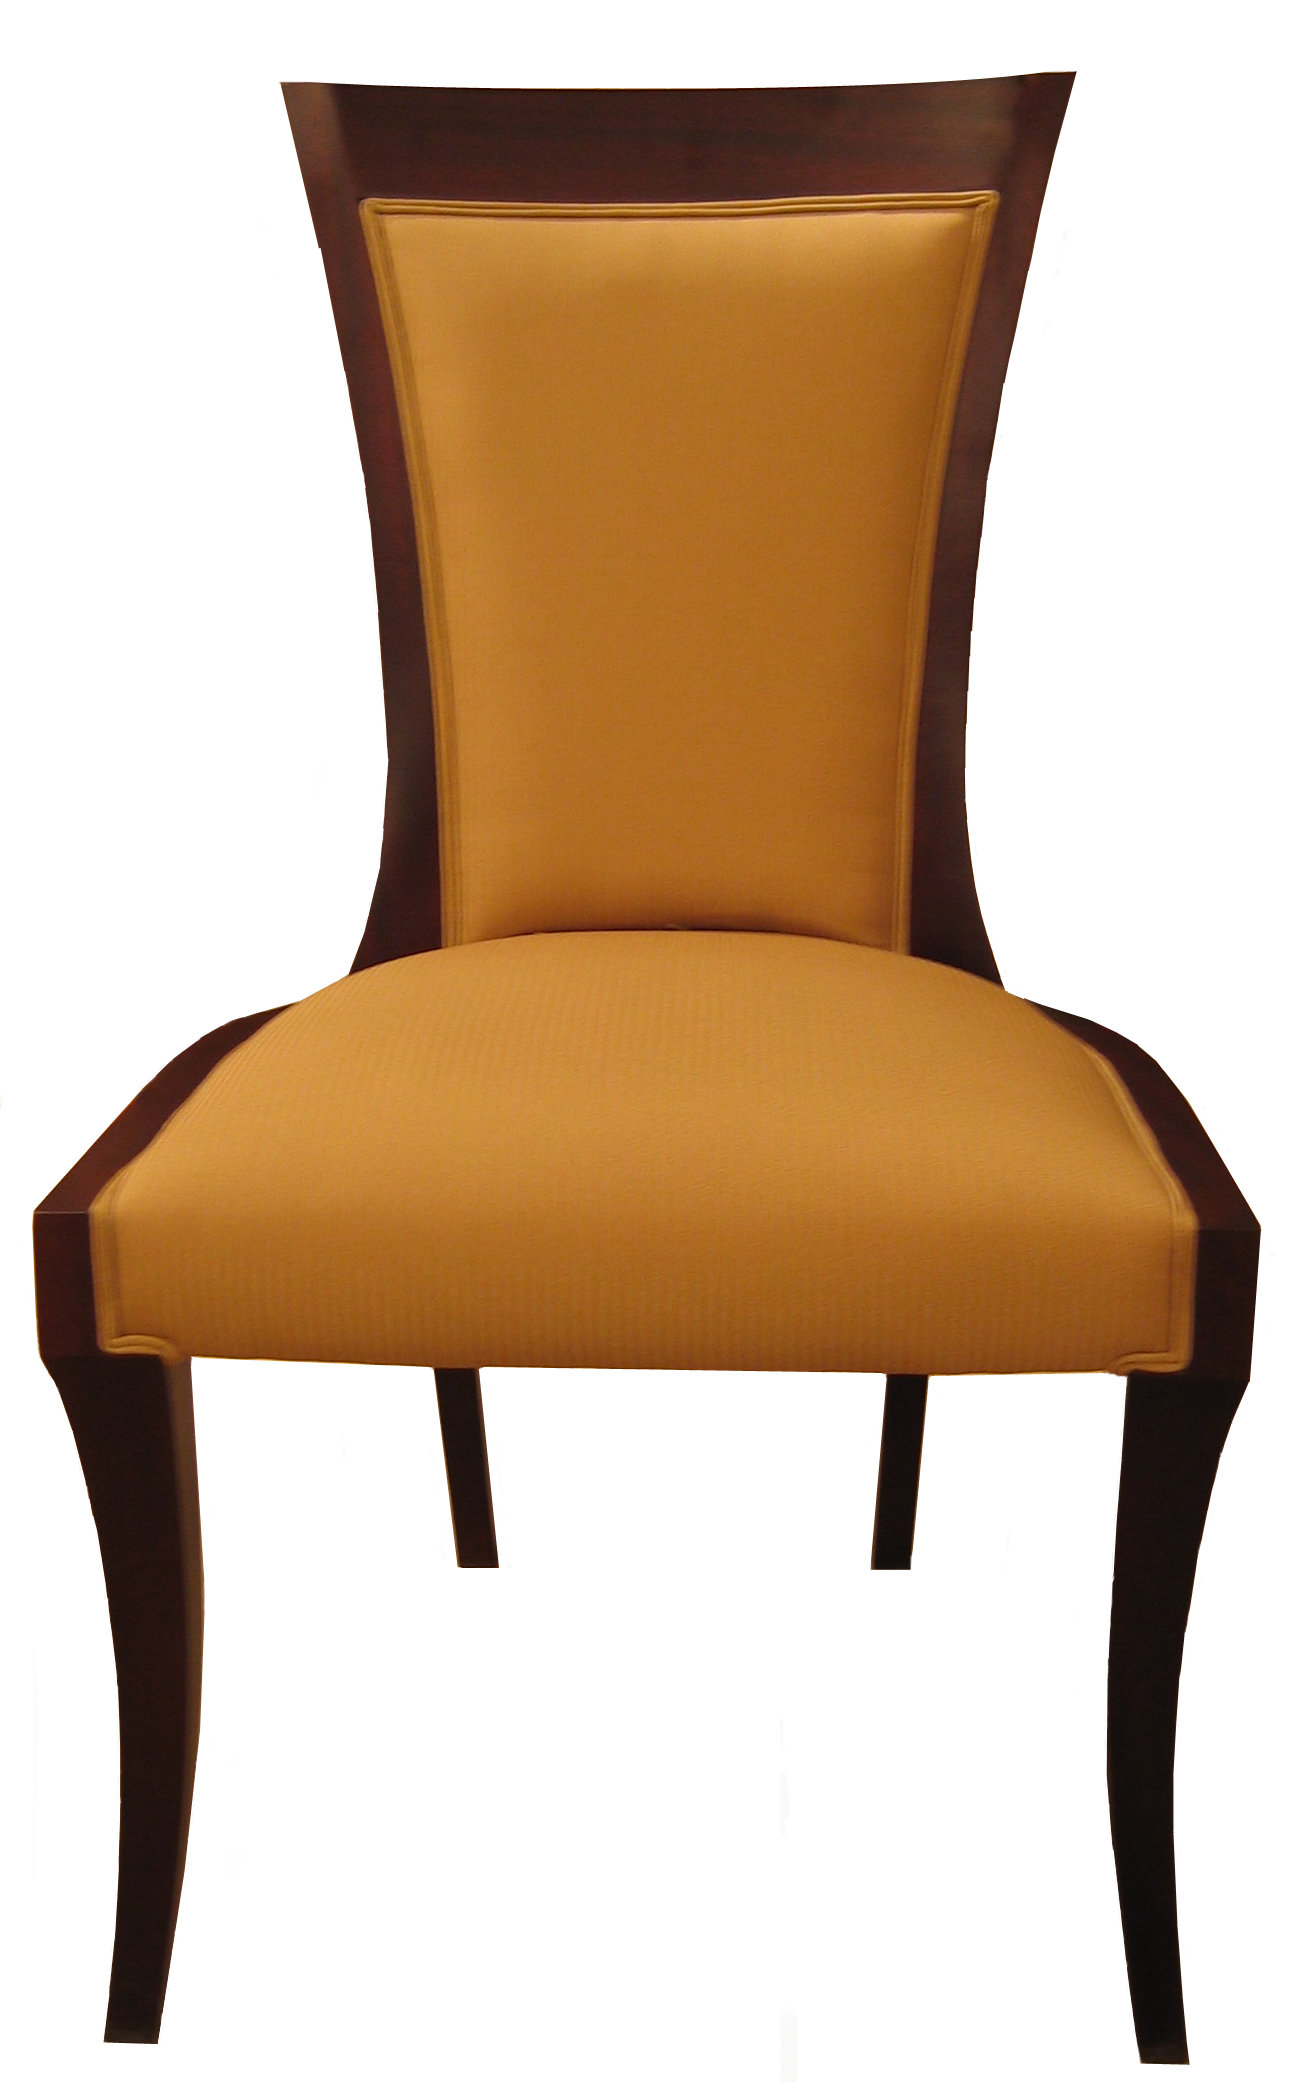 Dining chairs design chair pads cushions for Dining furniture design